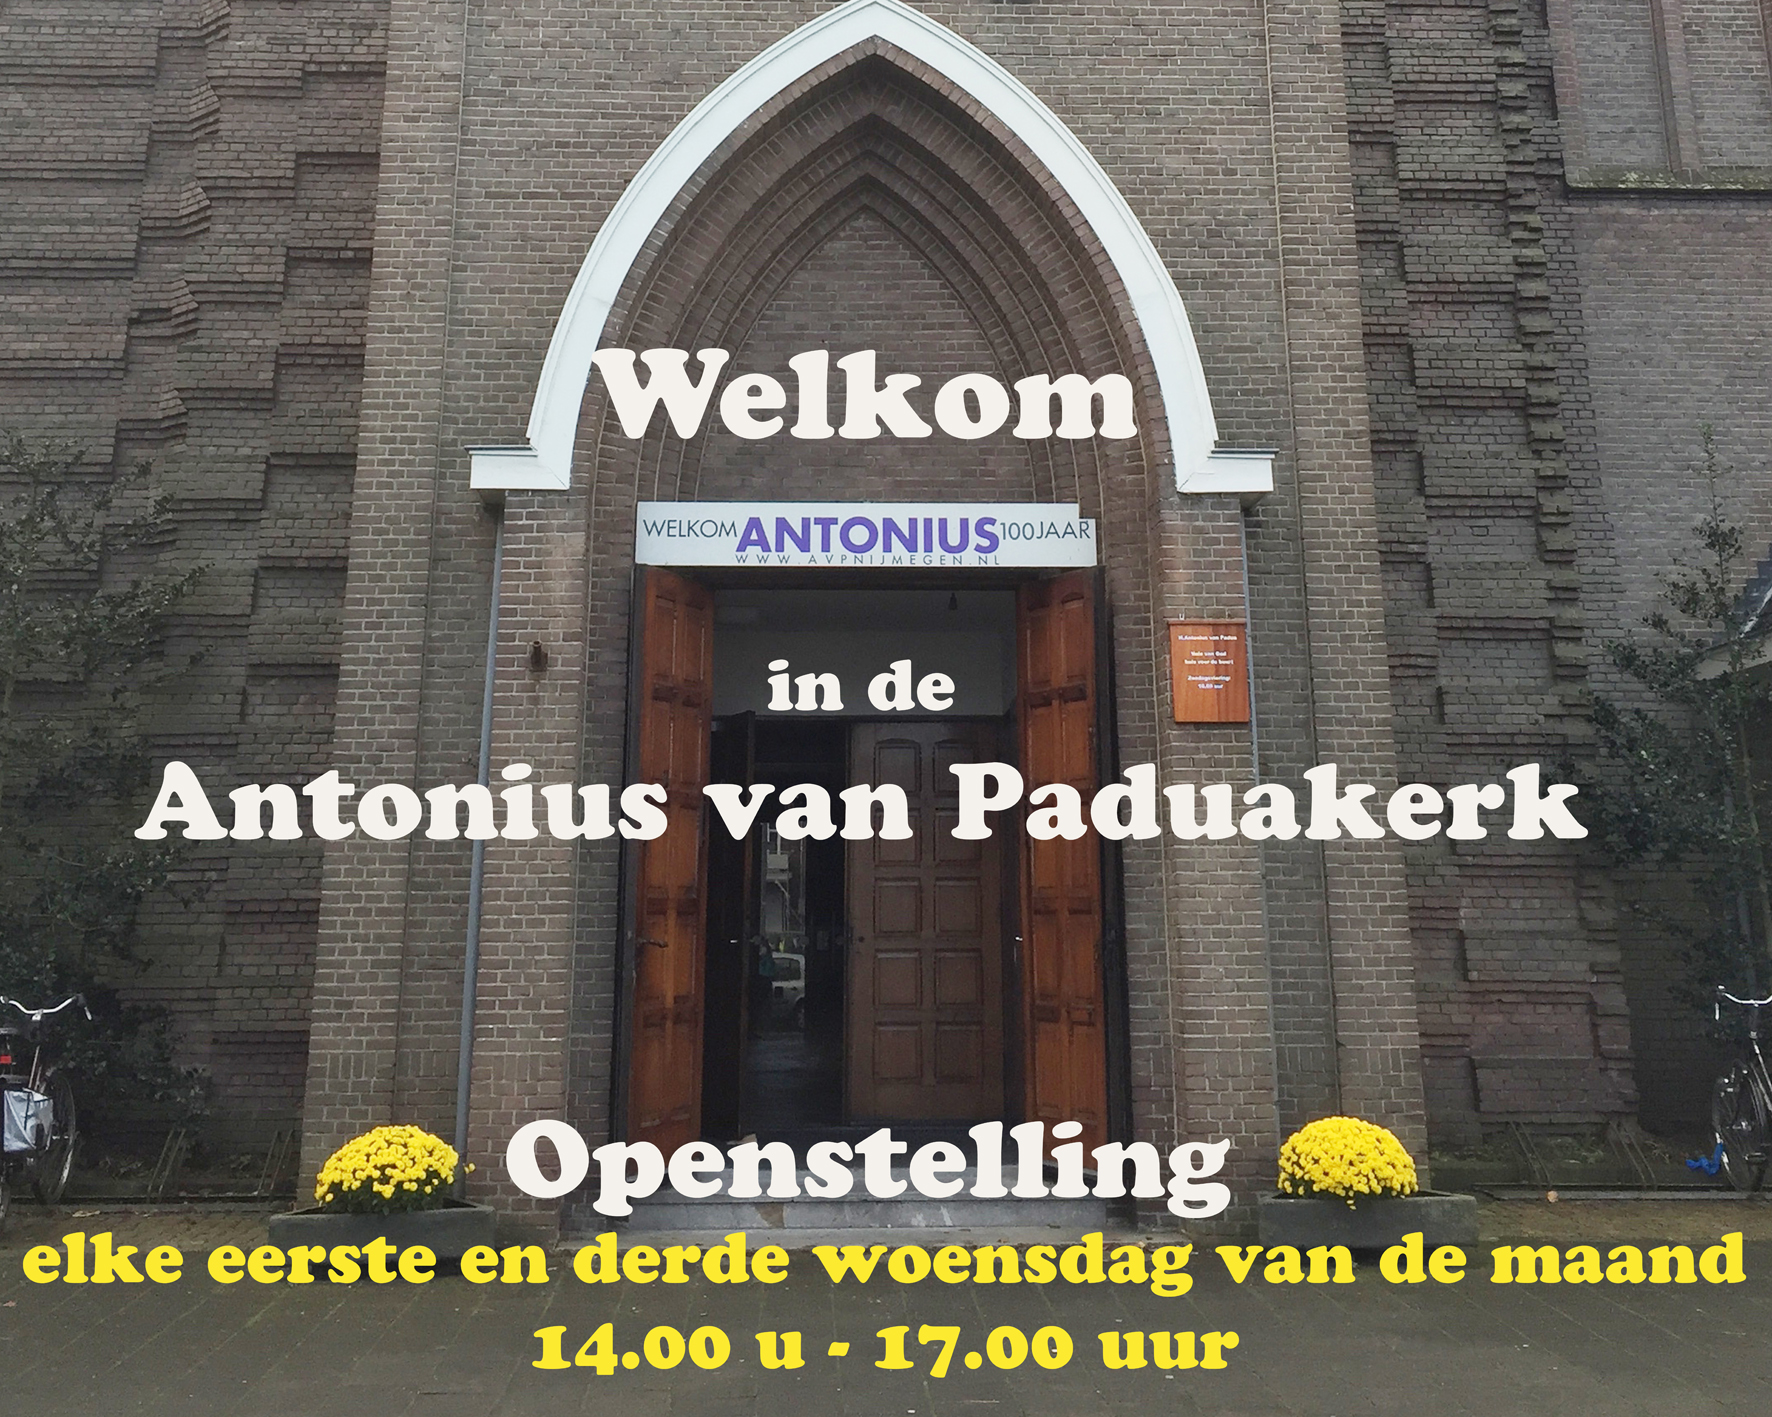 Spandoek openstelling 15x12